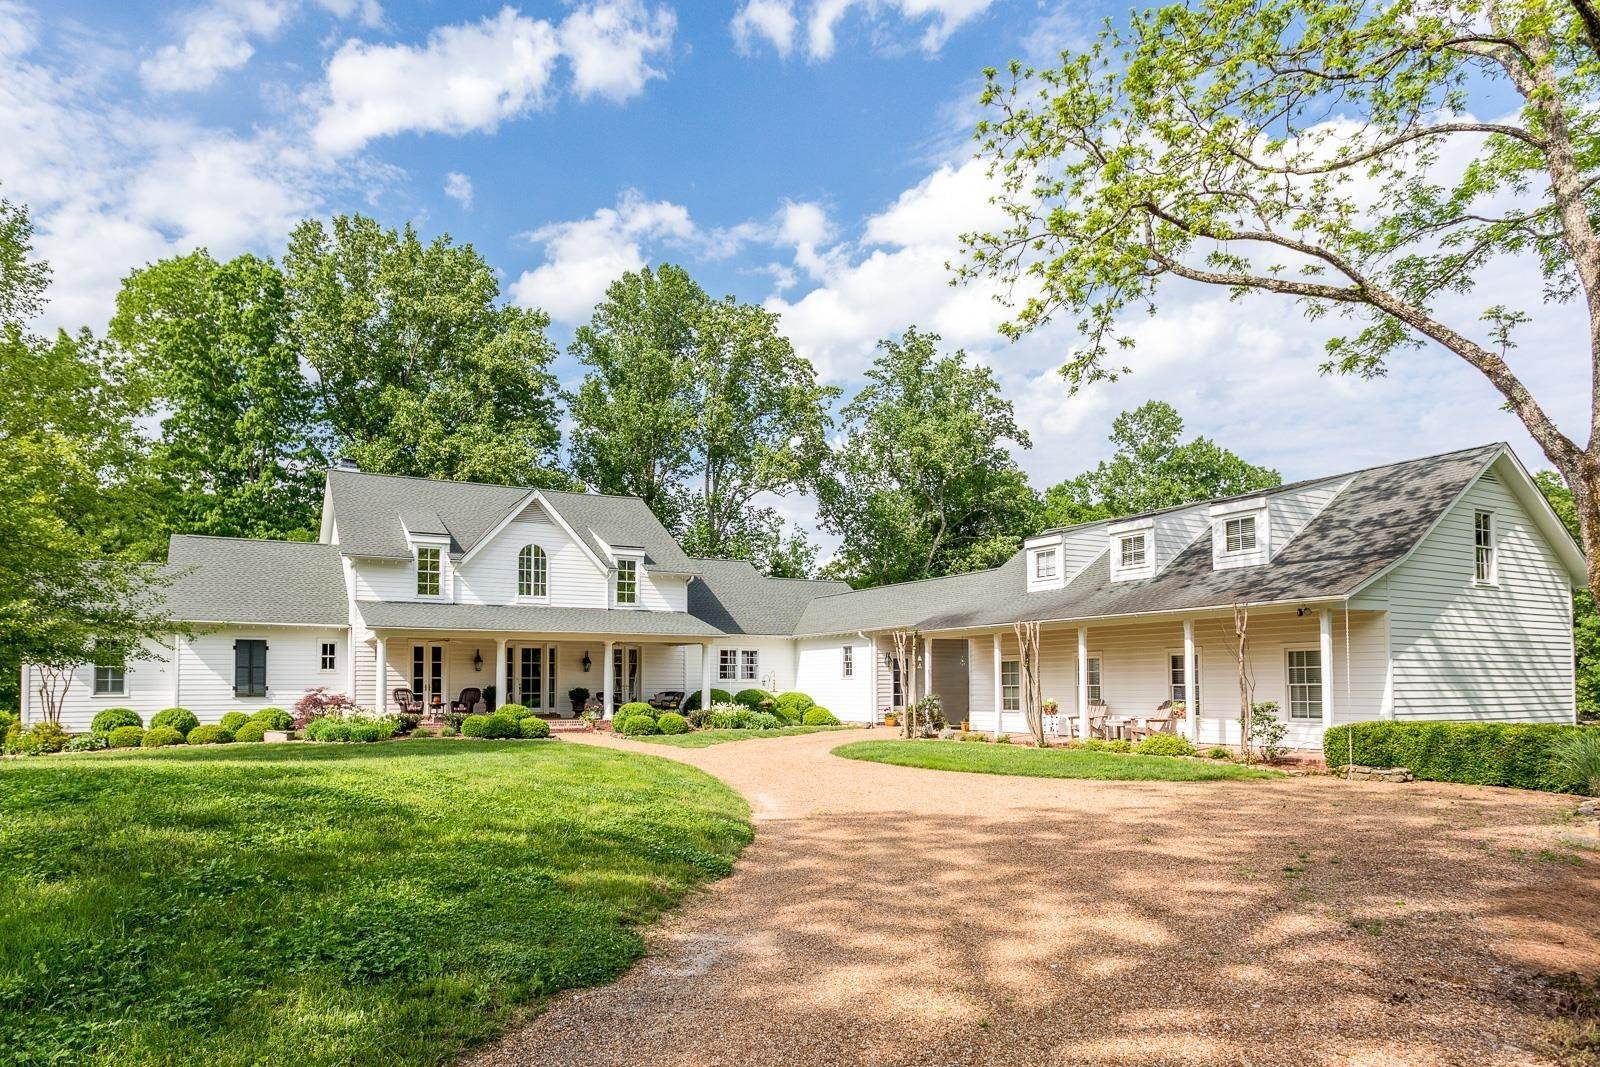 Single Family Homes for Sale at 5292 Poor House Hollow Road Franklin, Tennessee 37064 United States